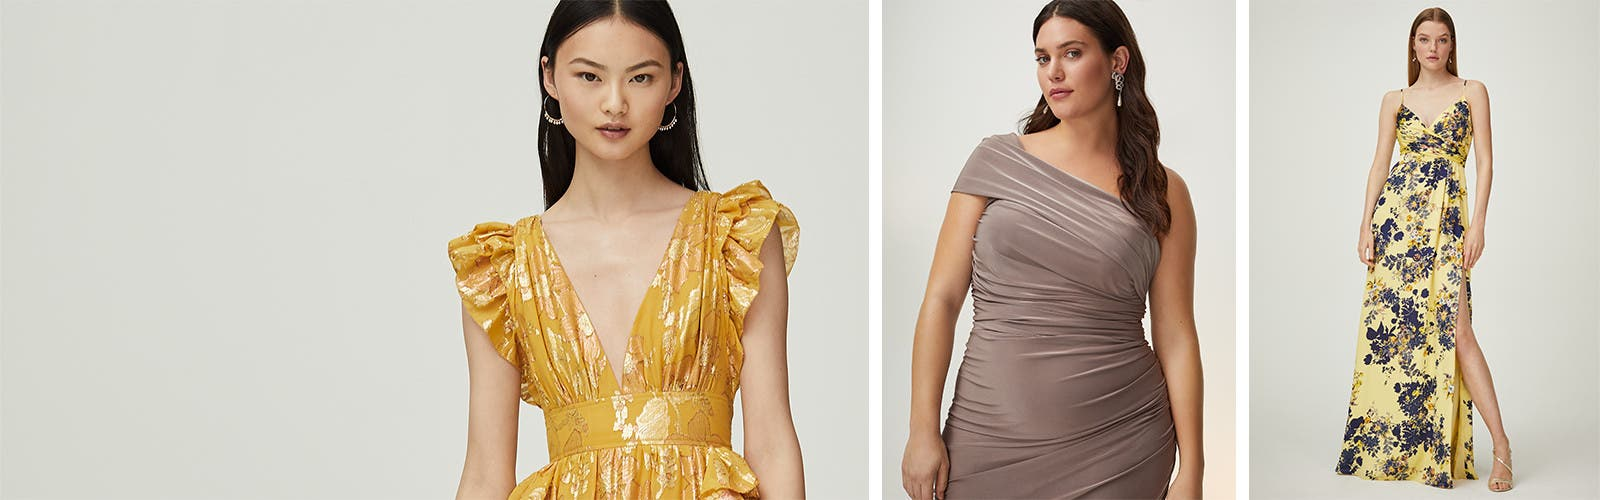 What's the dress code? Wedding-guest dresses.